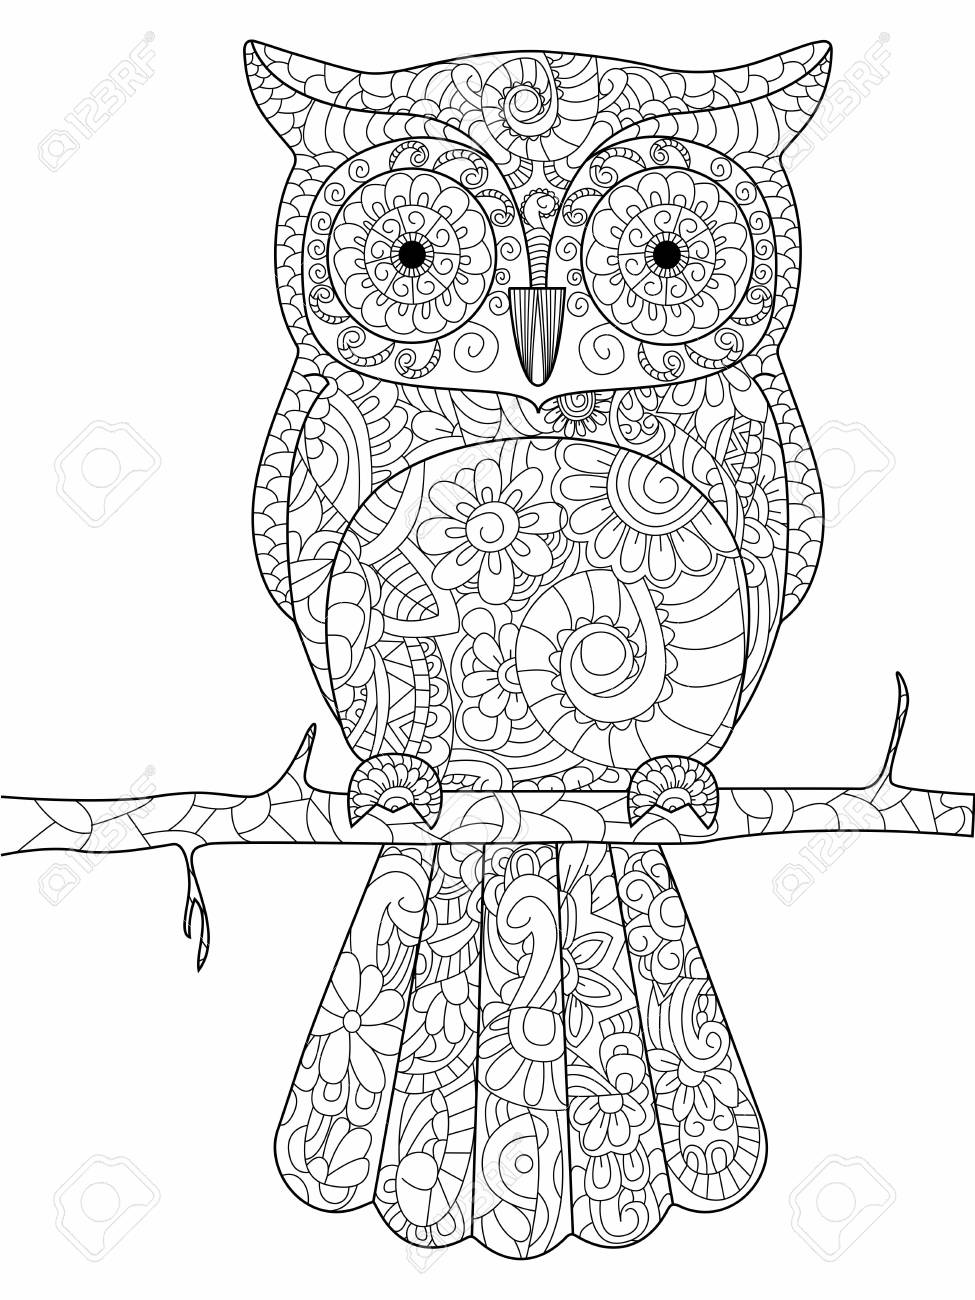 Owl On A Branch Coloring Book For Adults Raster Illustration ...